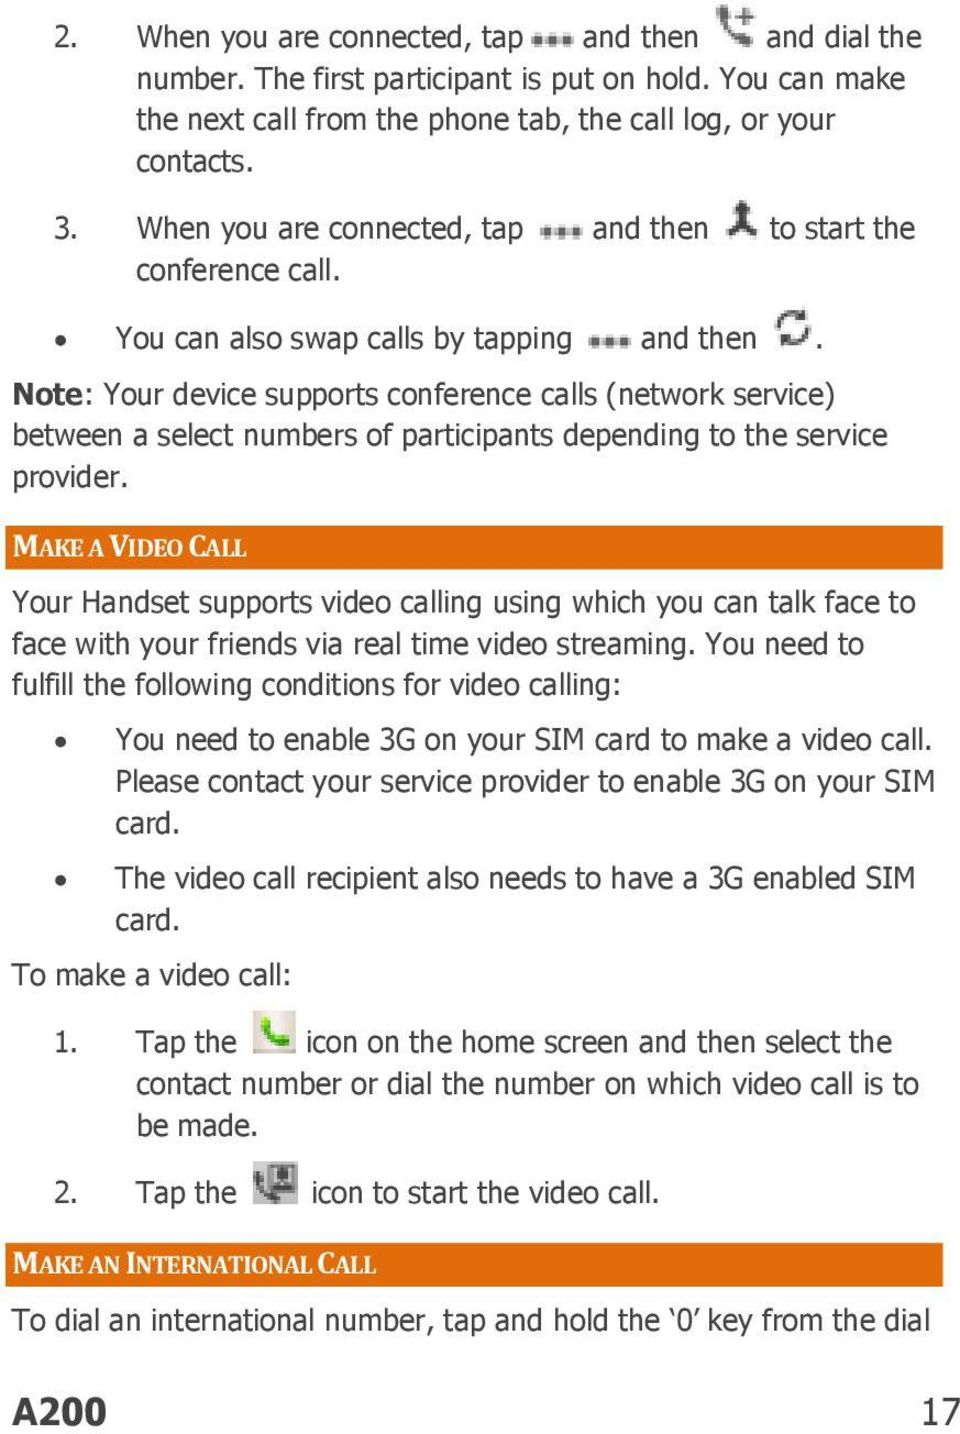 Note: Your device supports conference calls (network service) between a select numbers of participants depending to the service provider.